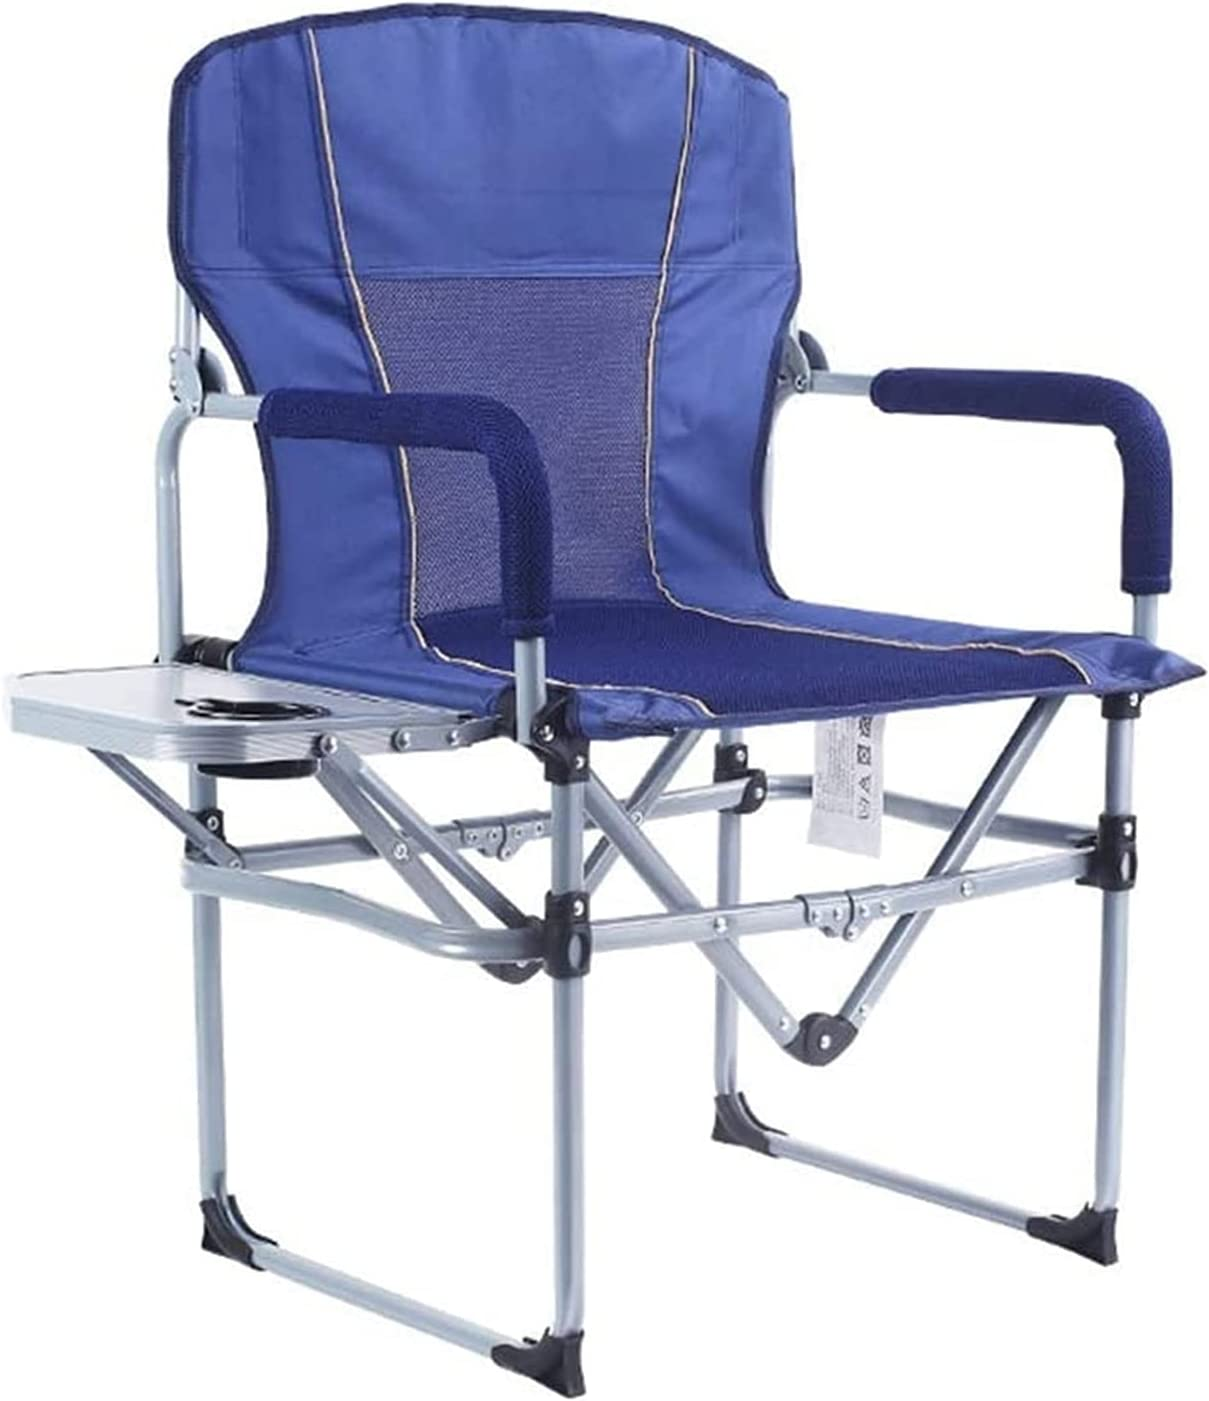 Camping Chairs for Adults Folding Ranking TOP1 Portabl Chair Popular shop is the lowest price challenge Aluminum